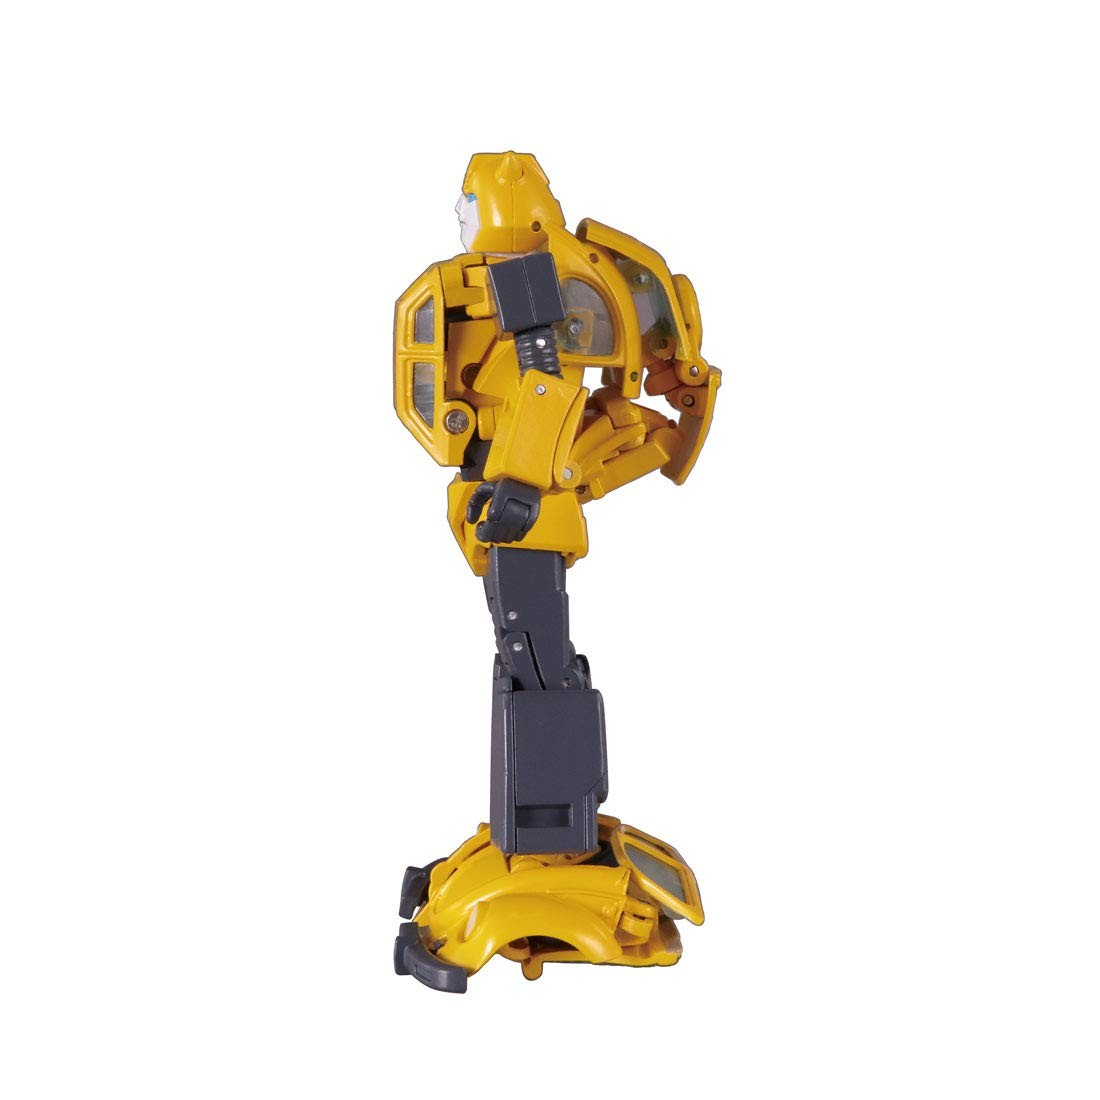 Transformers News: Official Images of New Takara Masterpiece MP-45 Bumblebee with Amazon Preorder